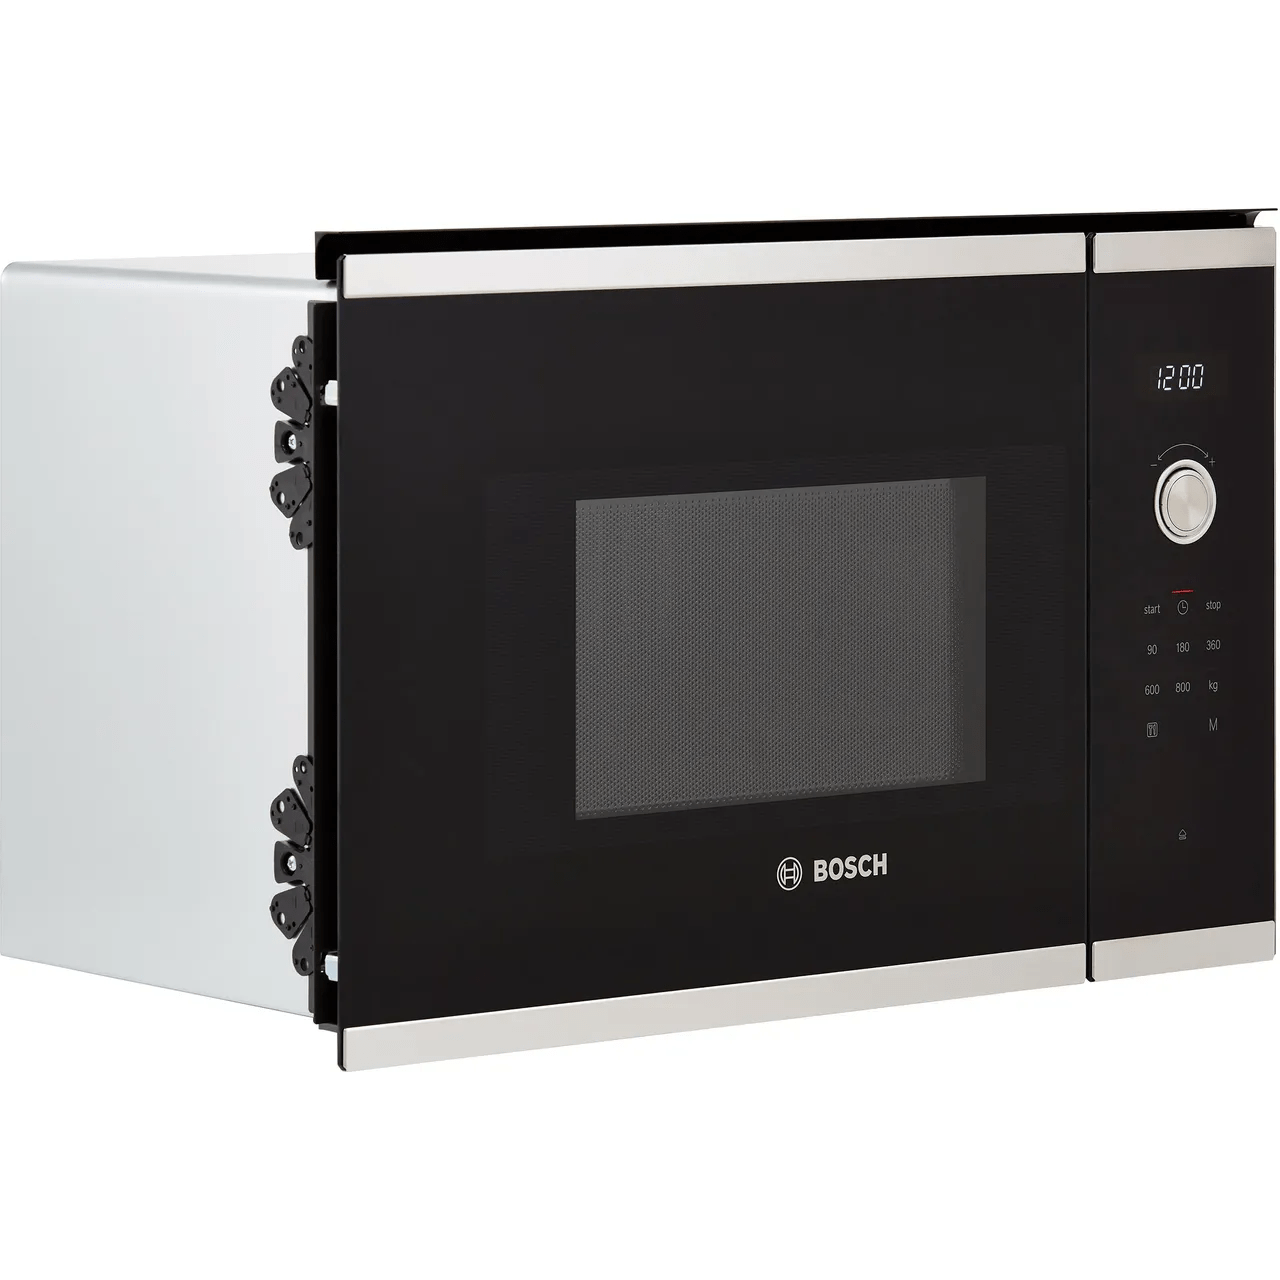 bosch serie 6 bfl524ms0b built in microwave stainless steel